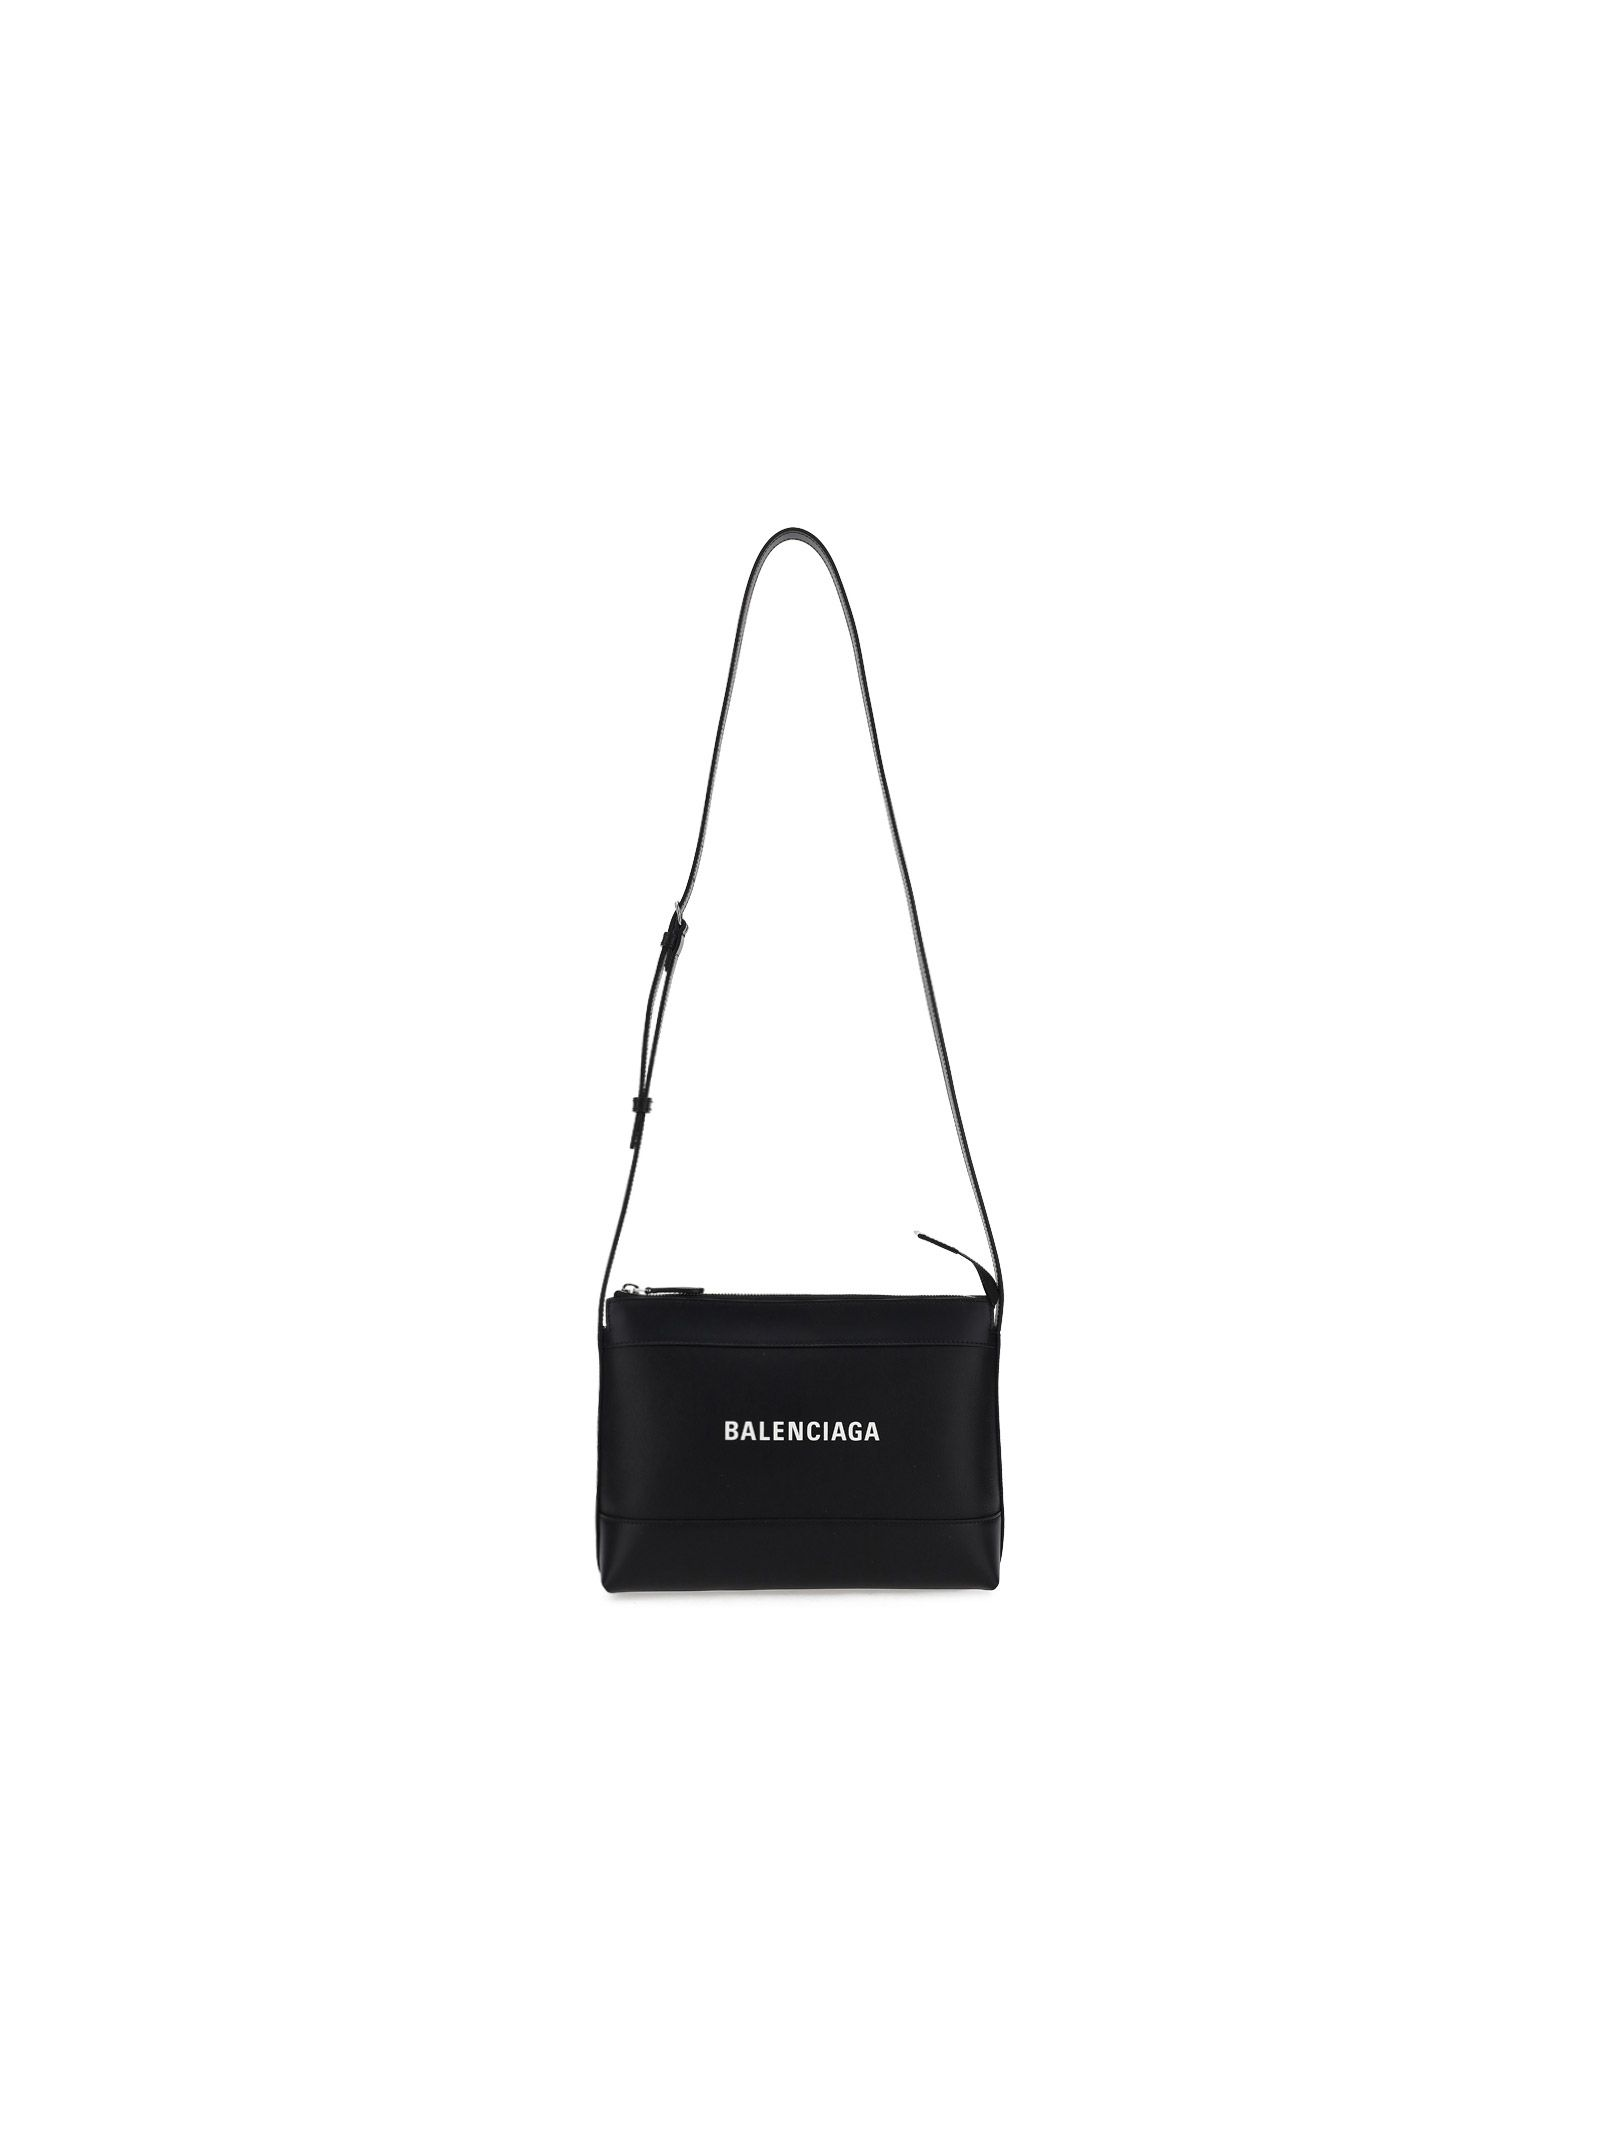 Balenciaga BALENCIAGA WOMEN'S BLACK OTHER MATERIALS SHOULDER BAG